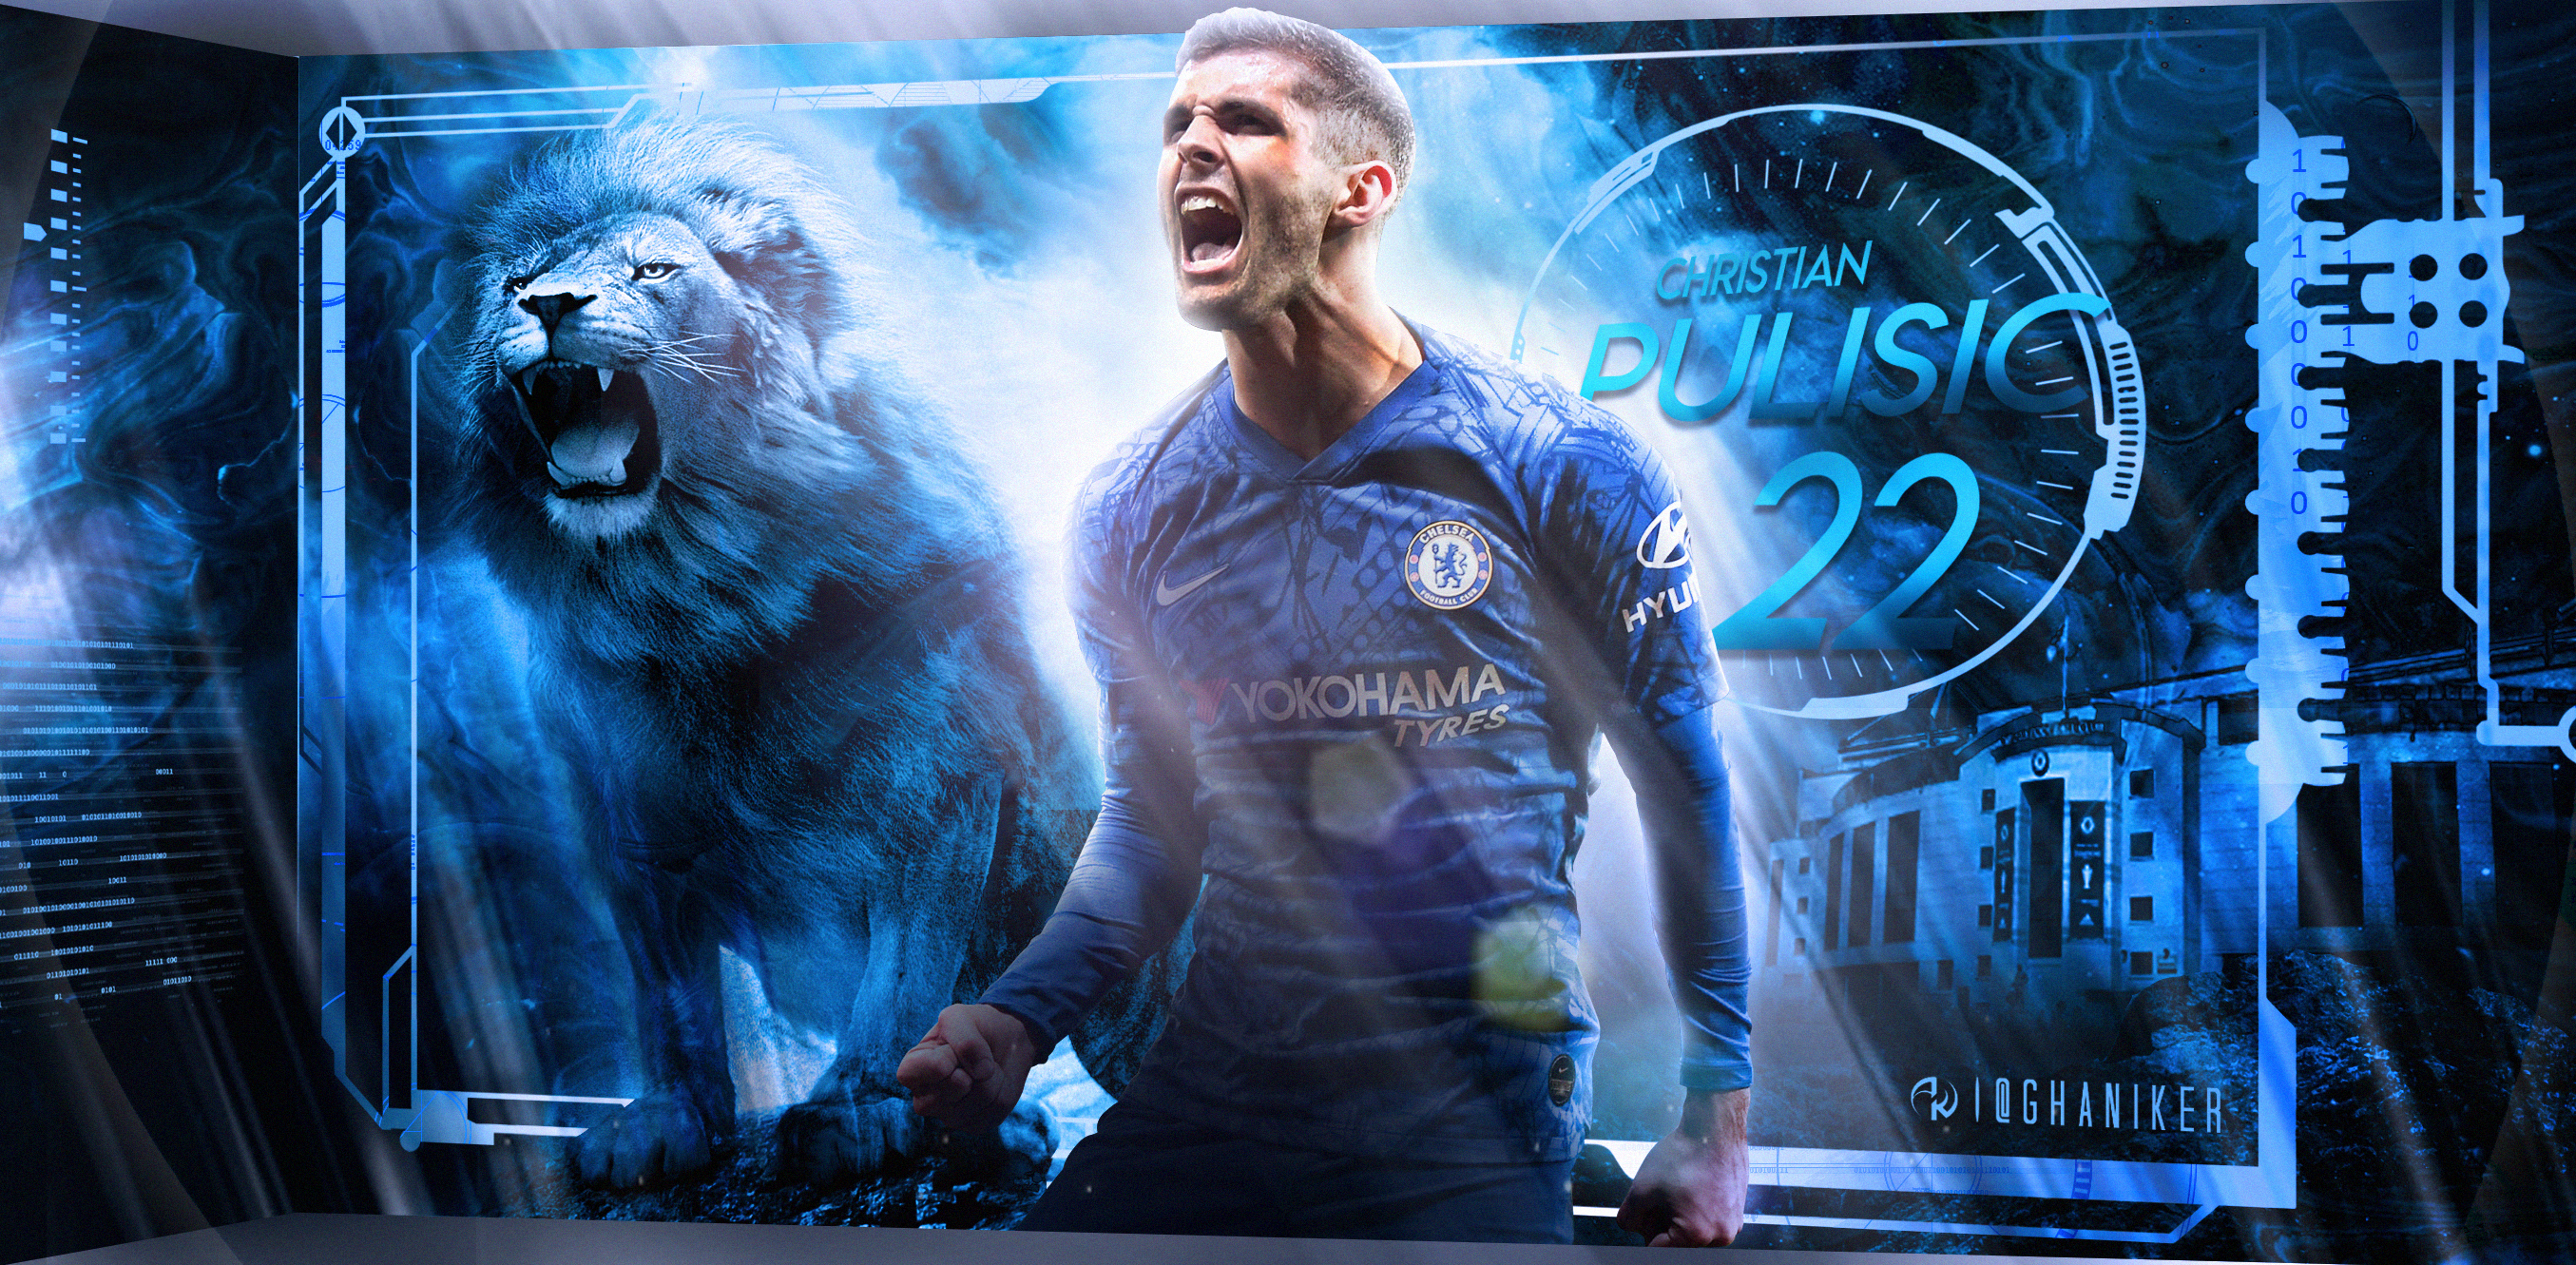 Christian Pulisic Wallpaper Chelsea FC 2019 20 By Ghanibvb